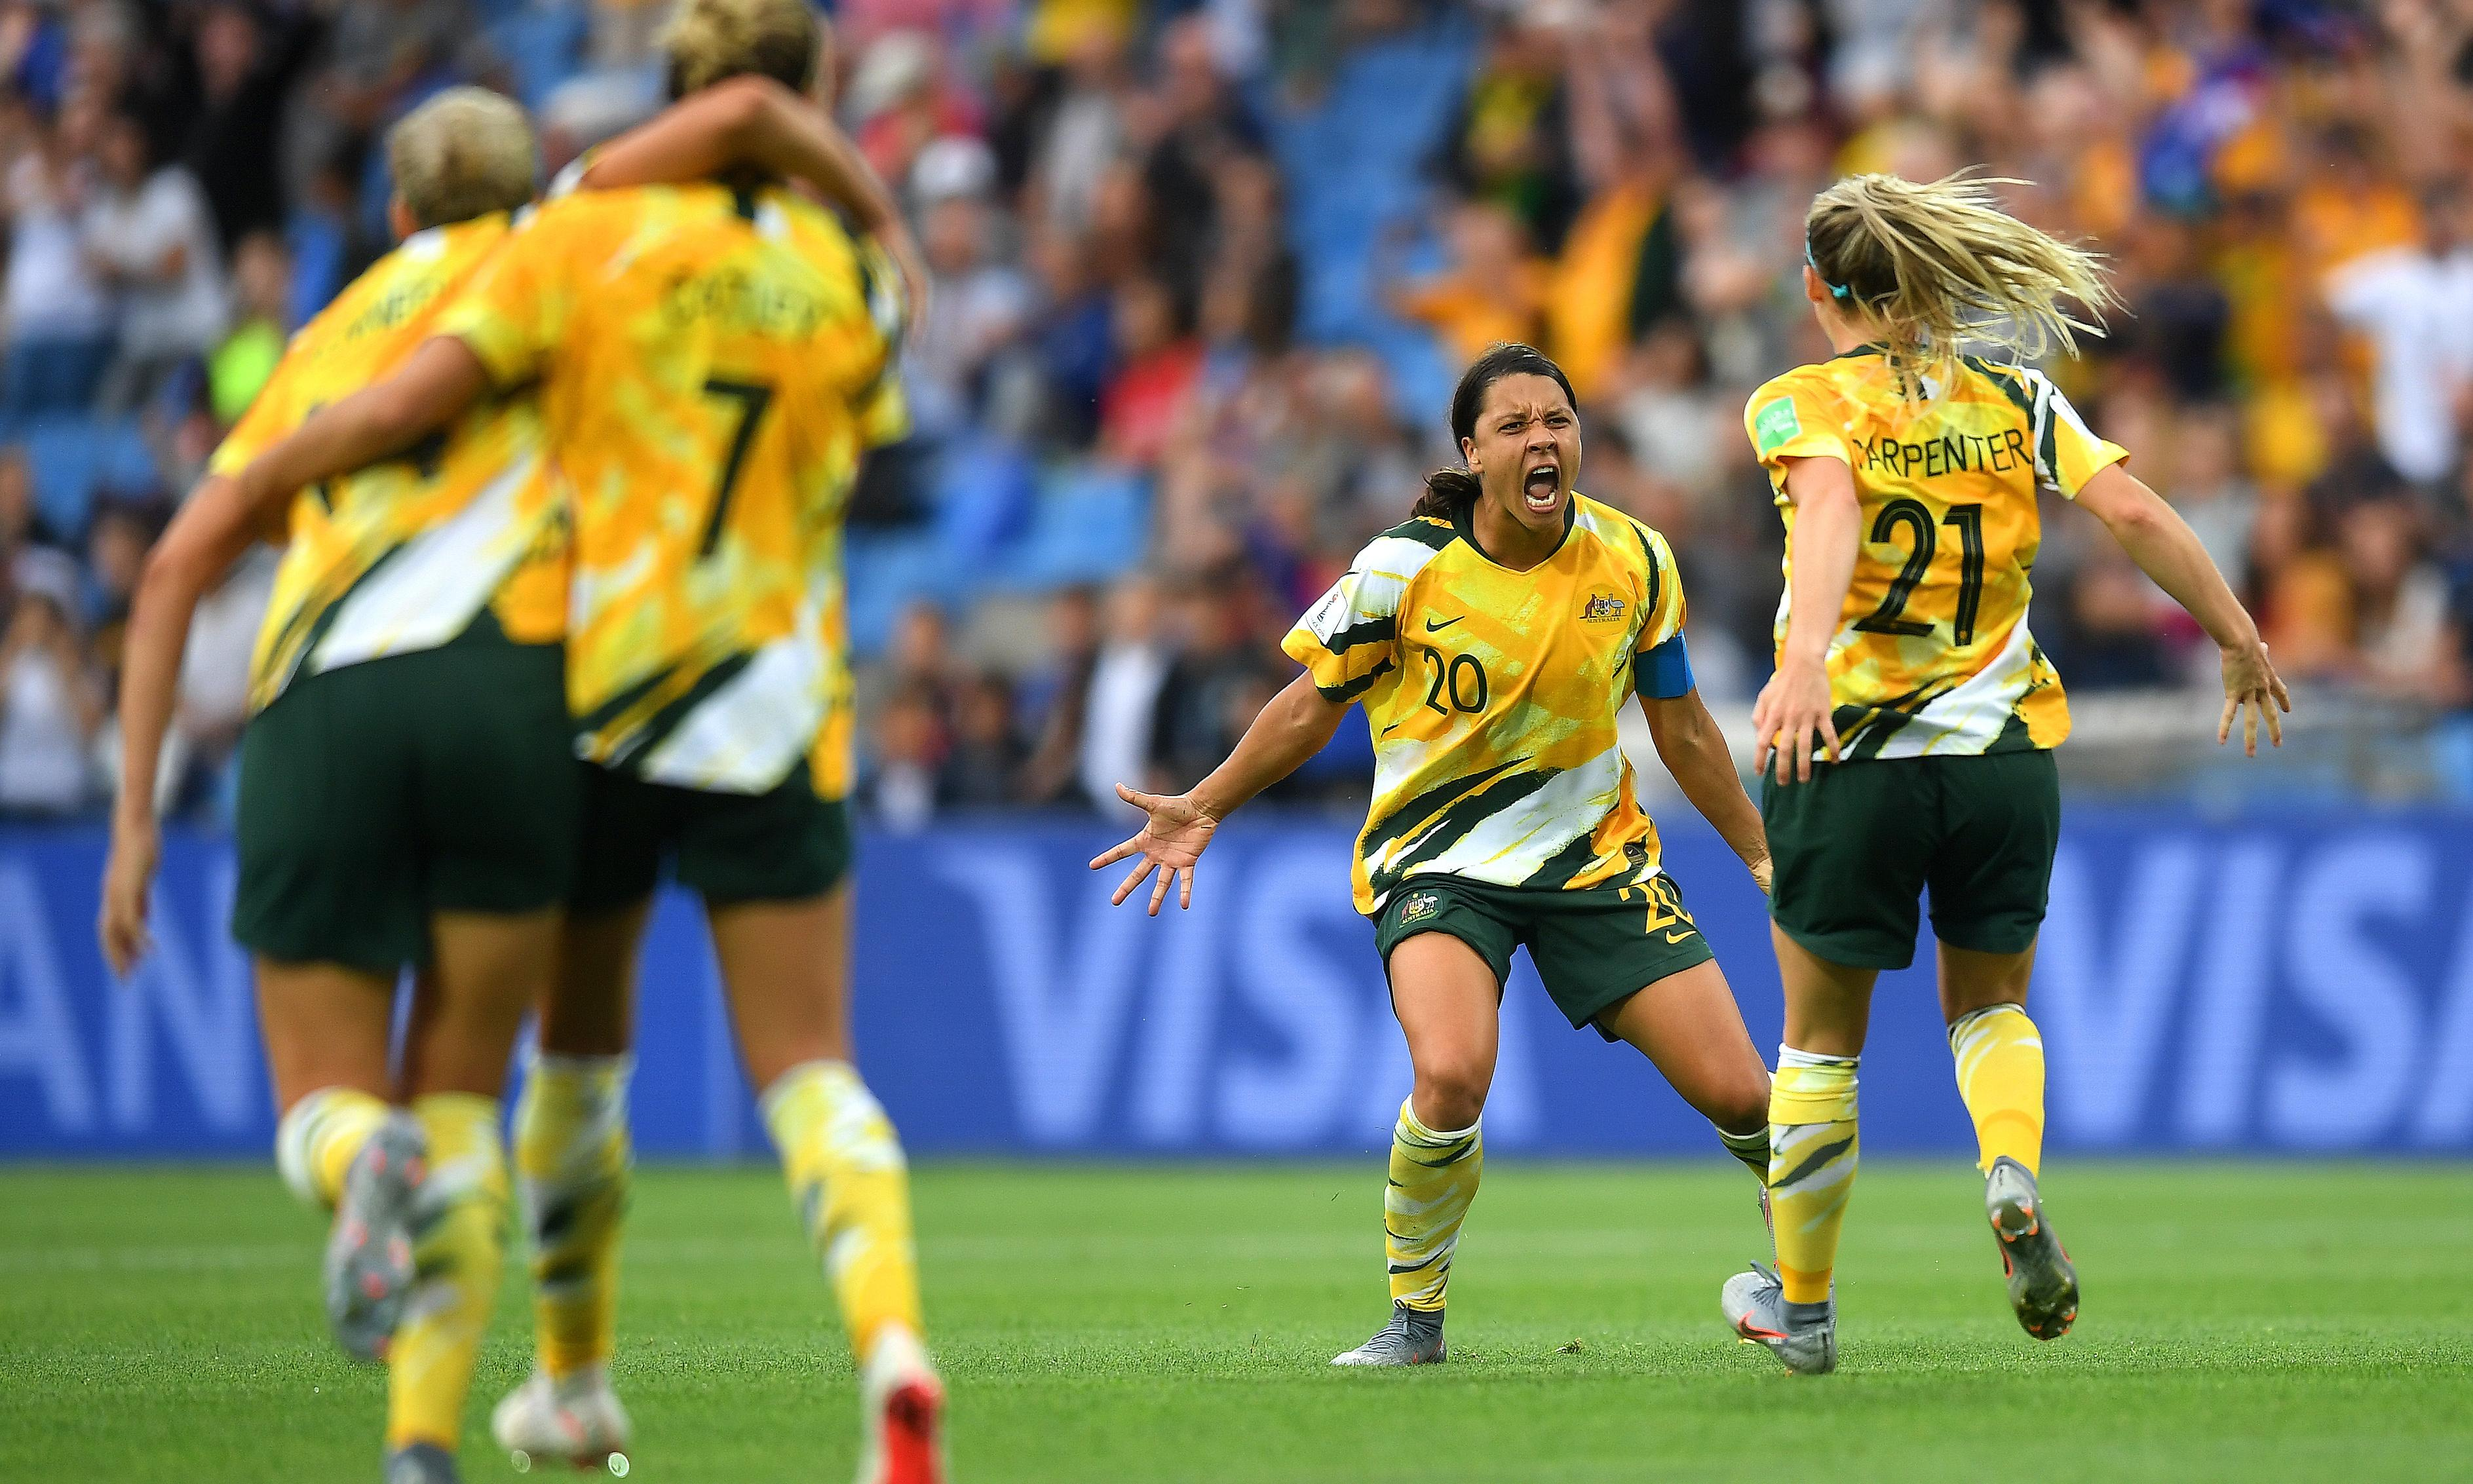 Matildas rally as thread of negativity fails to unravel Women's World Cup hopes